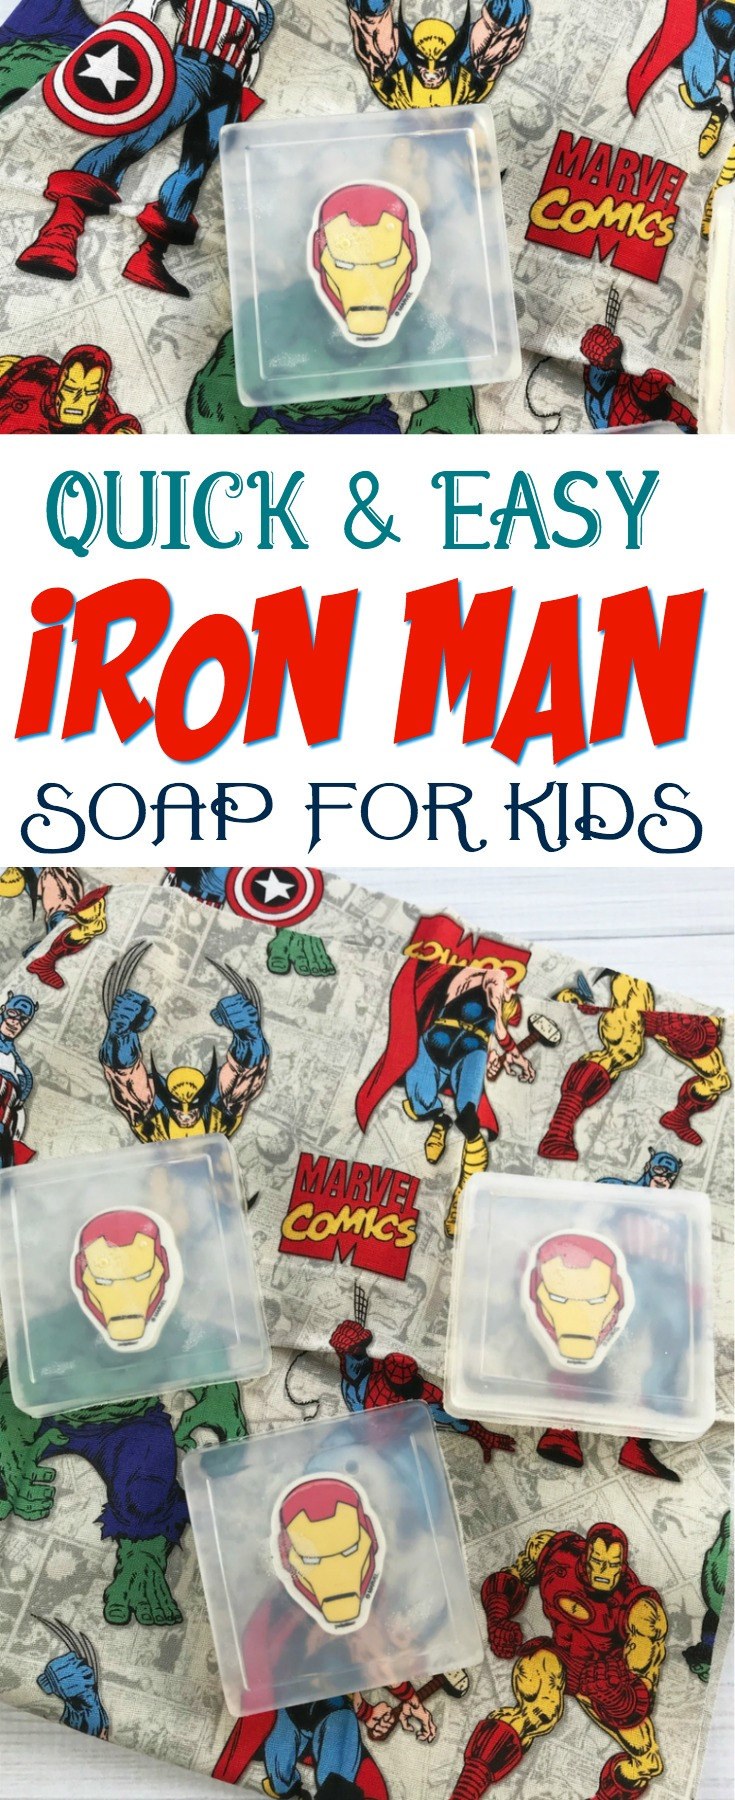 These simple Iron Man Soaps for Kids are perfect for party favors at parties and even for students! #soap #IronMan #birthdayparty #favors #homemadegift #kidssoap #kidspartyfavors #Marvelcomics